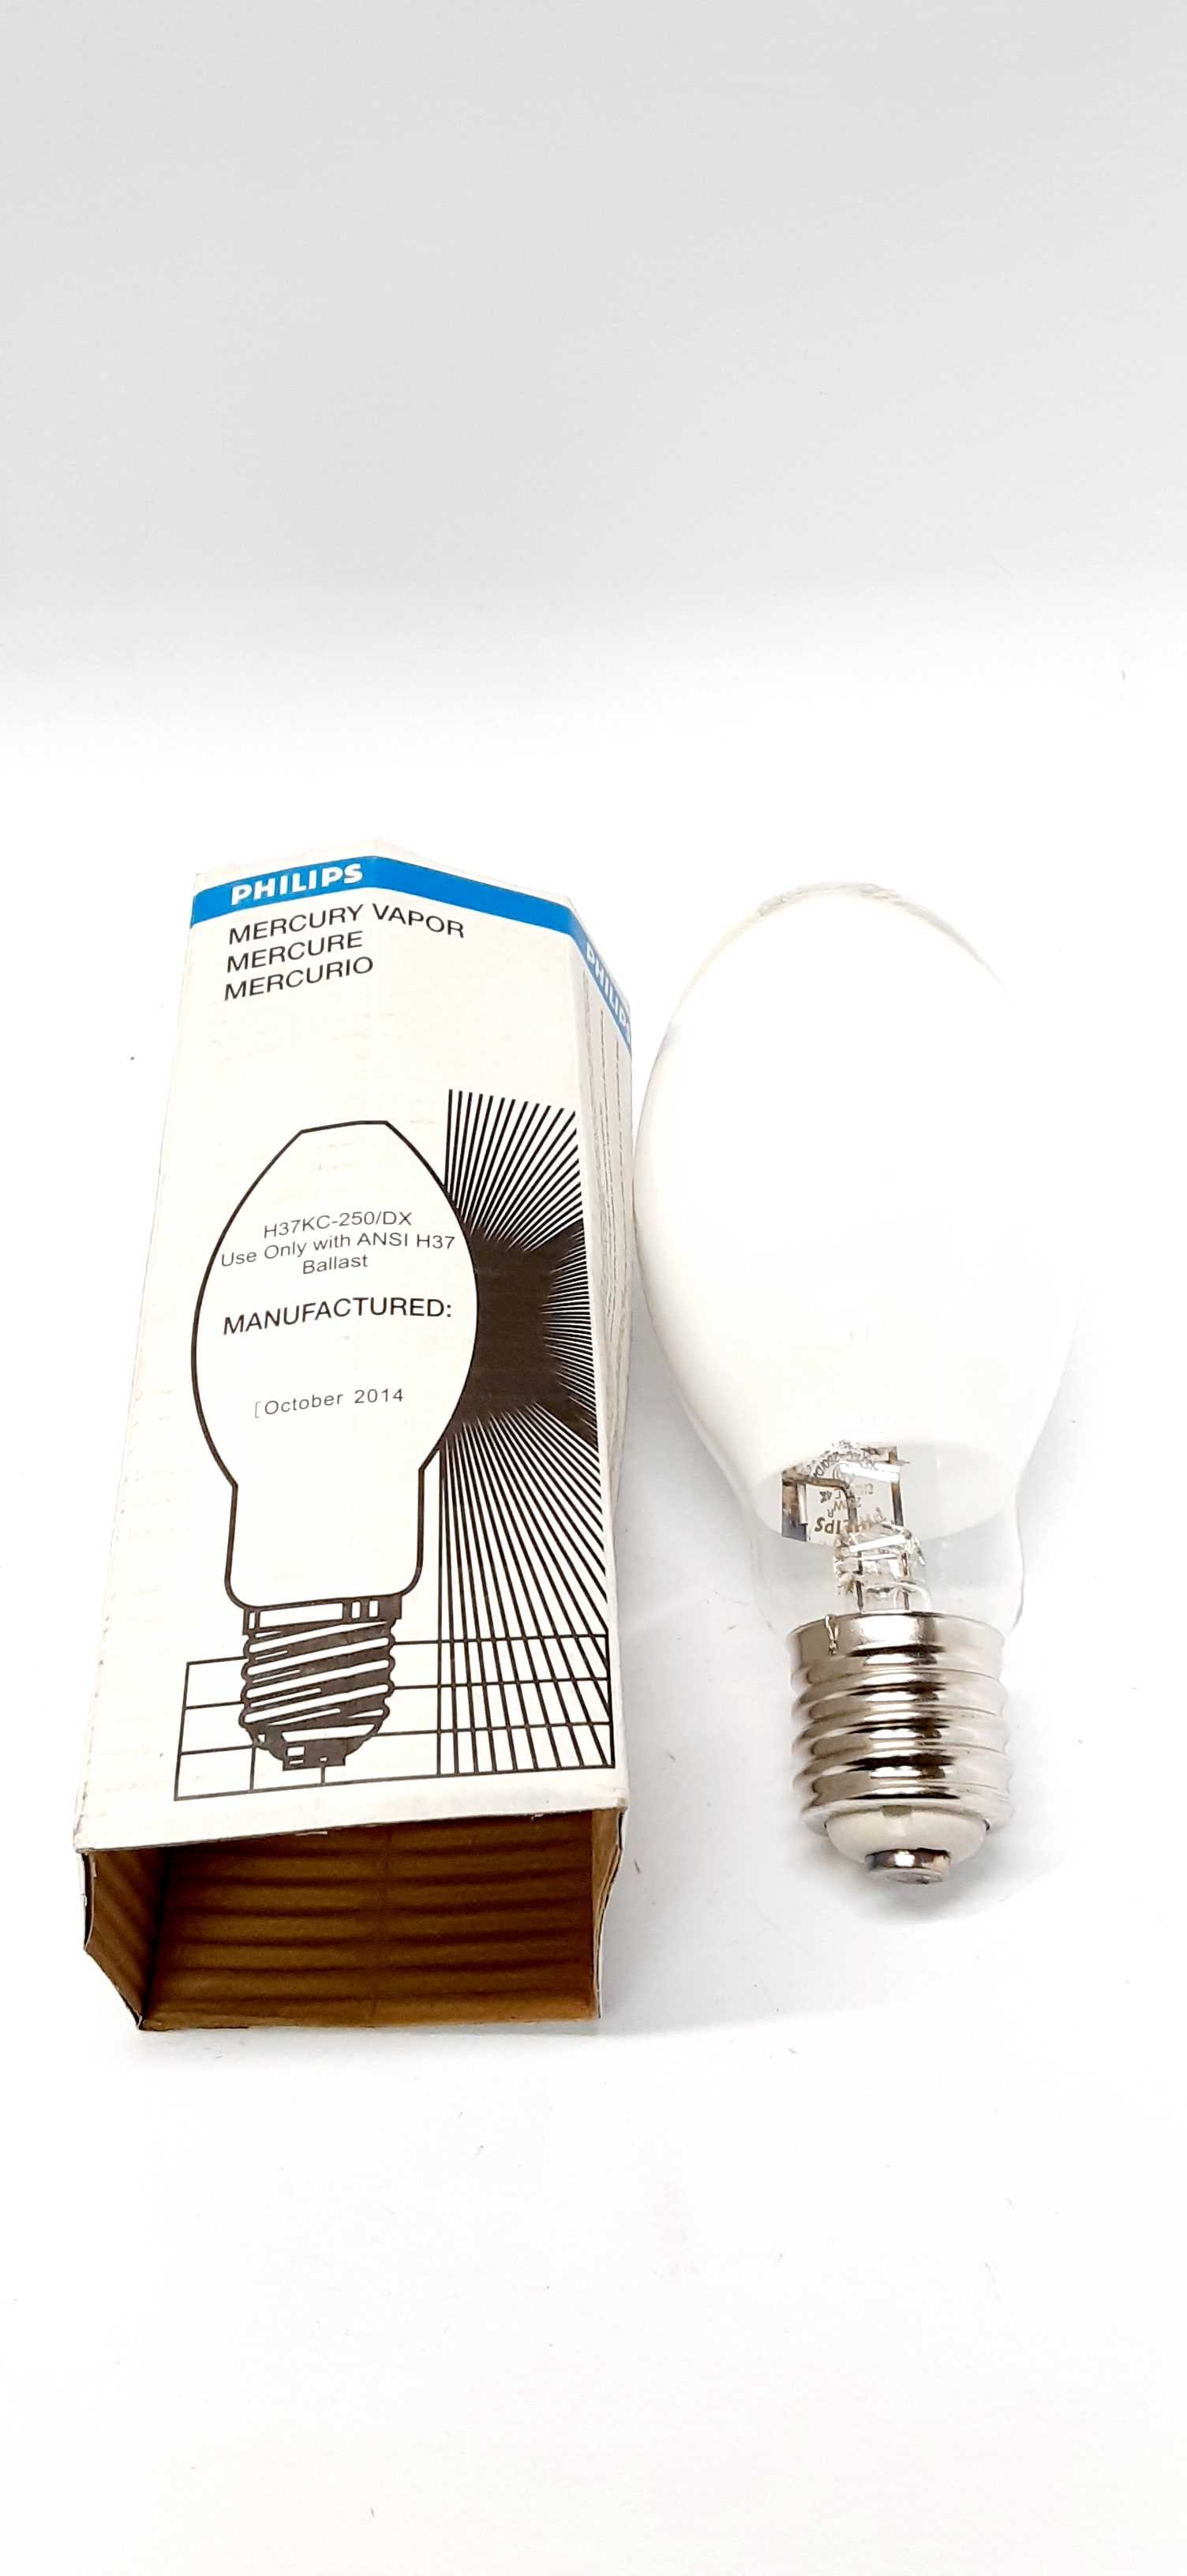 Philips H37KC-250/DX Mercury Vapor Lamp 250W